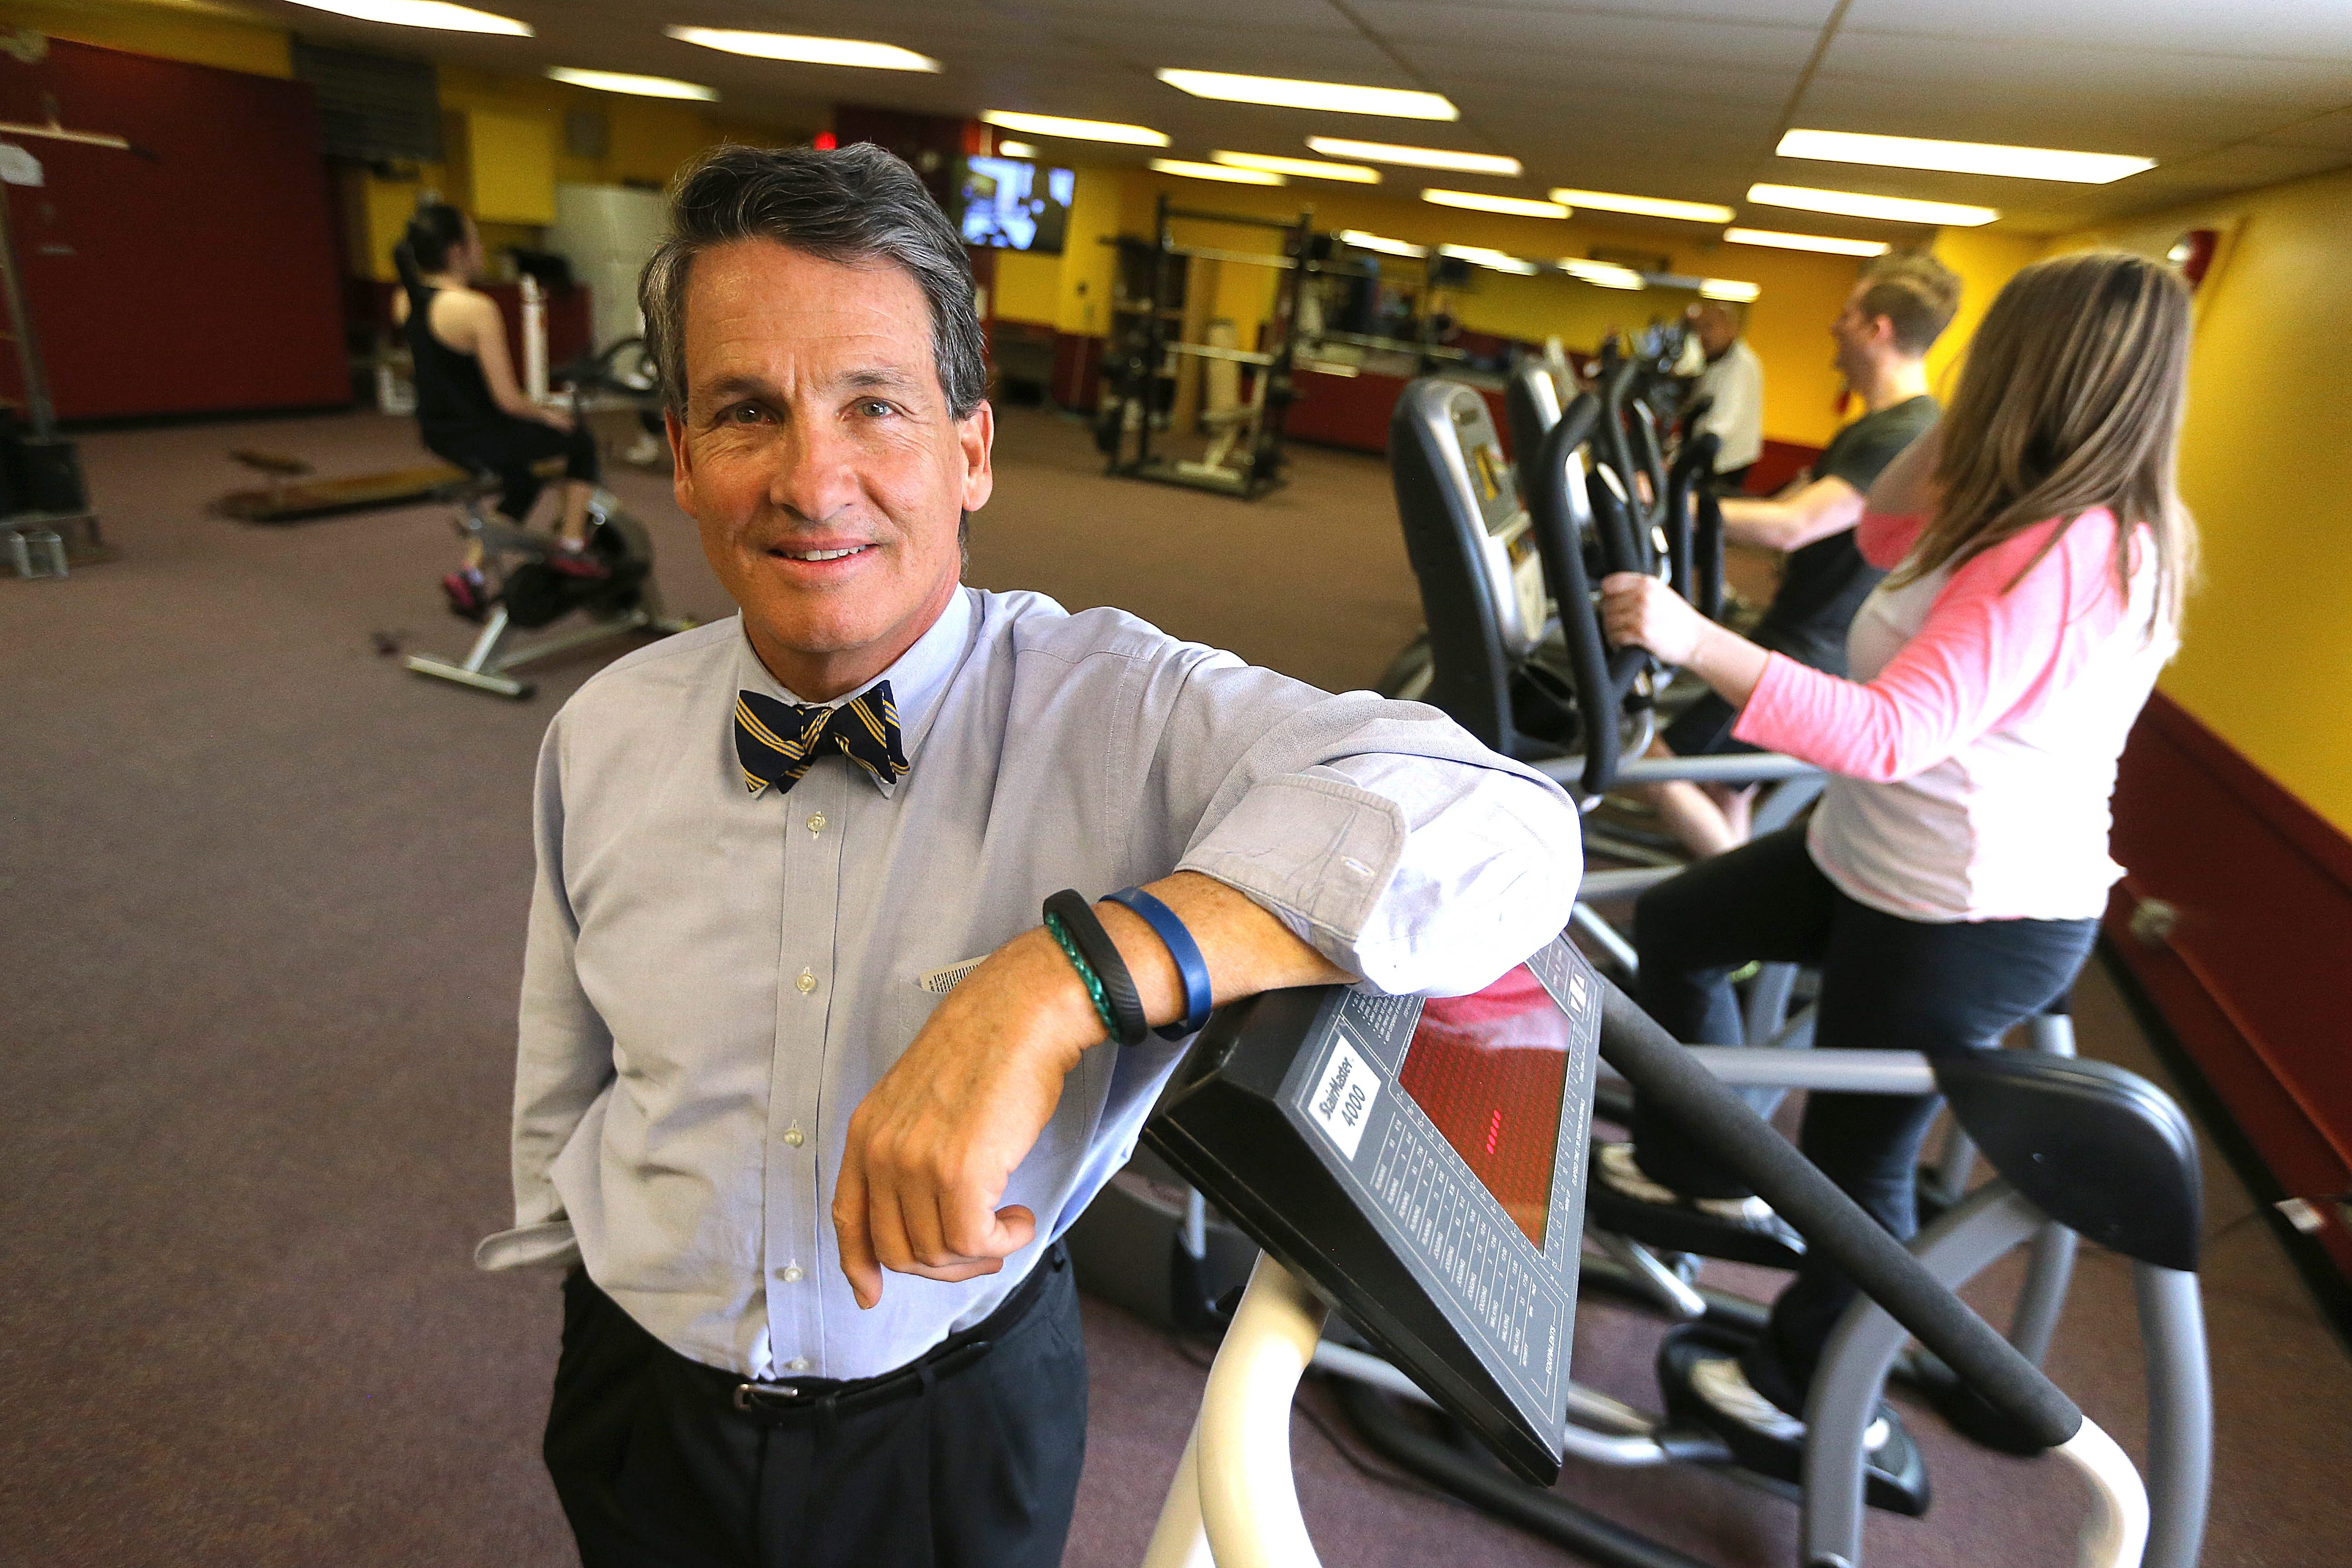 Edward F. Walsh, president of Walsh Duffield Cos., wears a personal fitness band on his wrist that syncs health statistics to his smartphone.